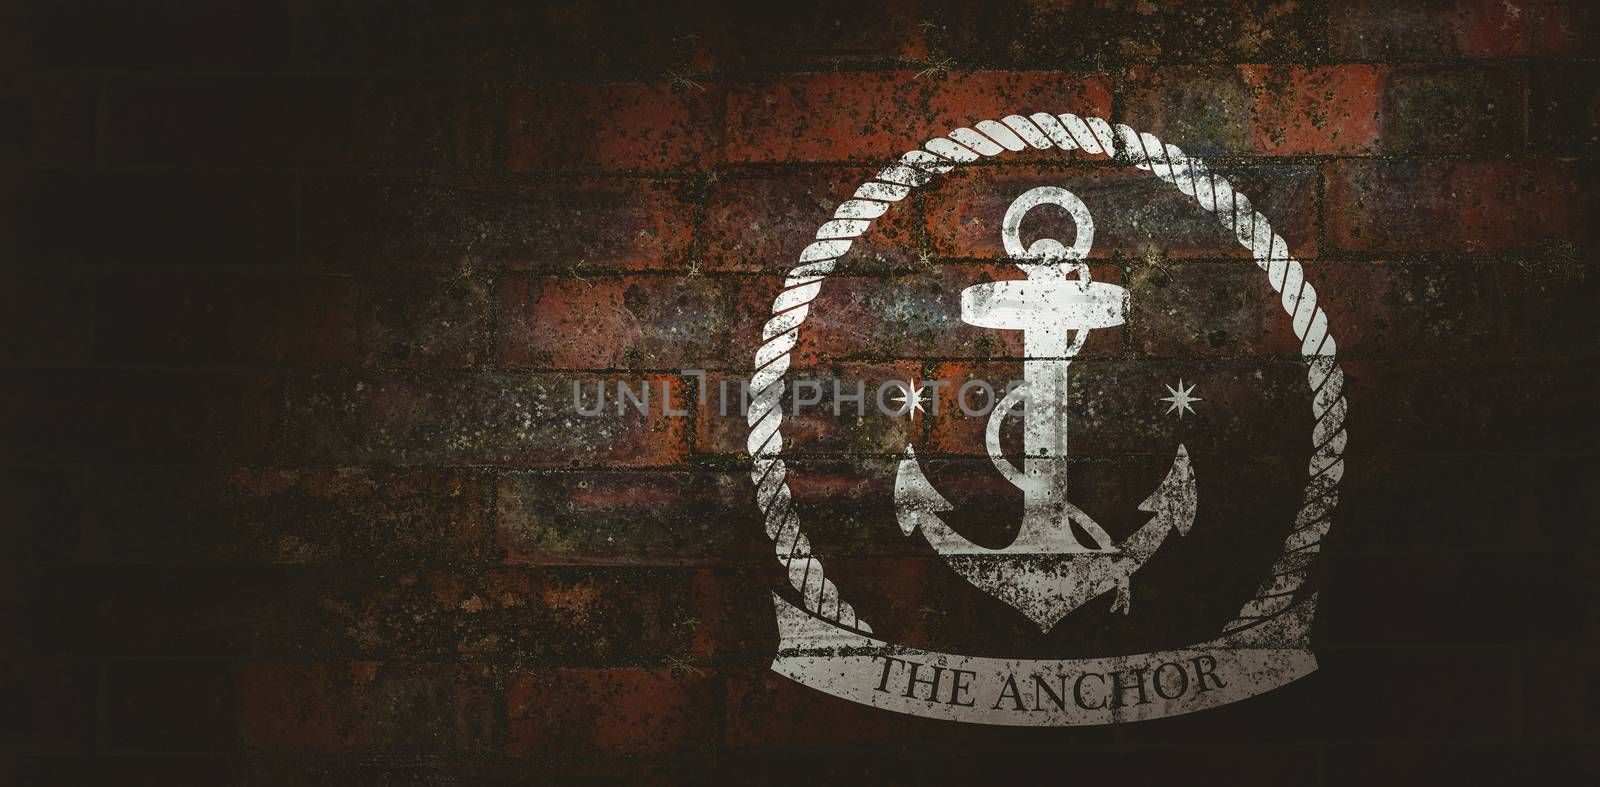 The anchor icon against texture of bricks wall